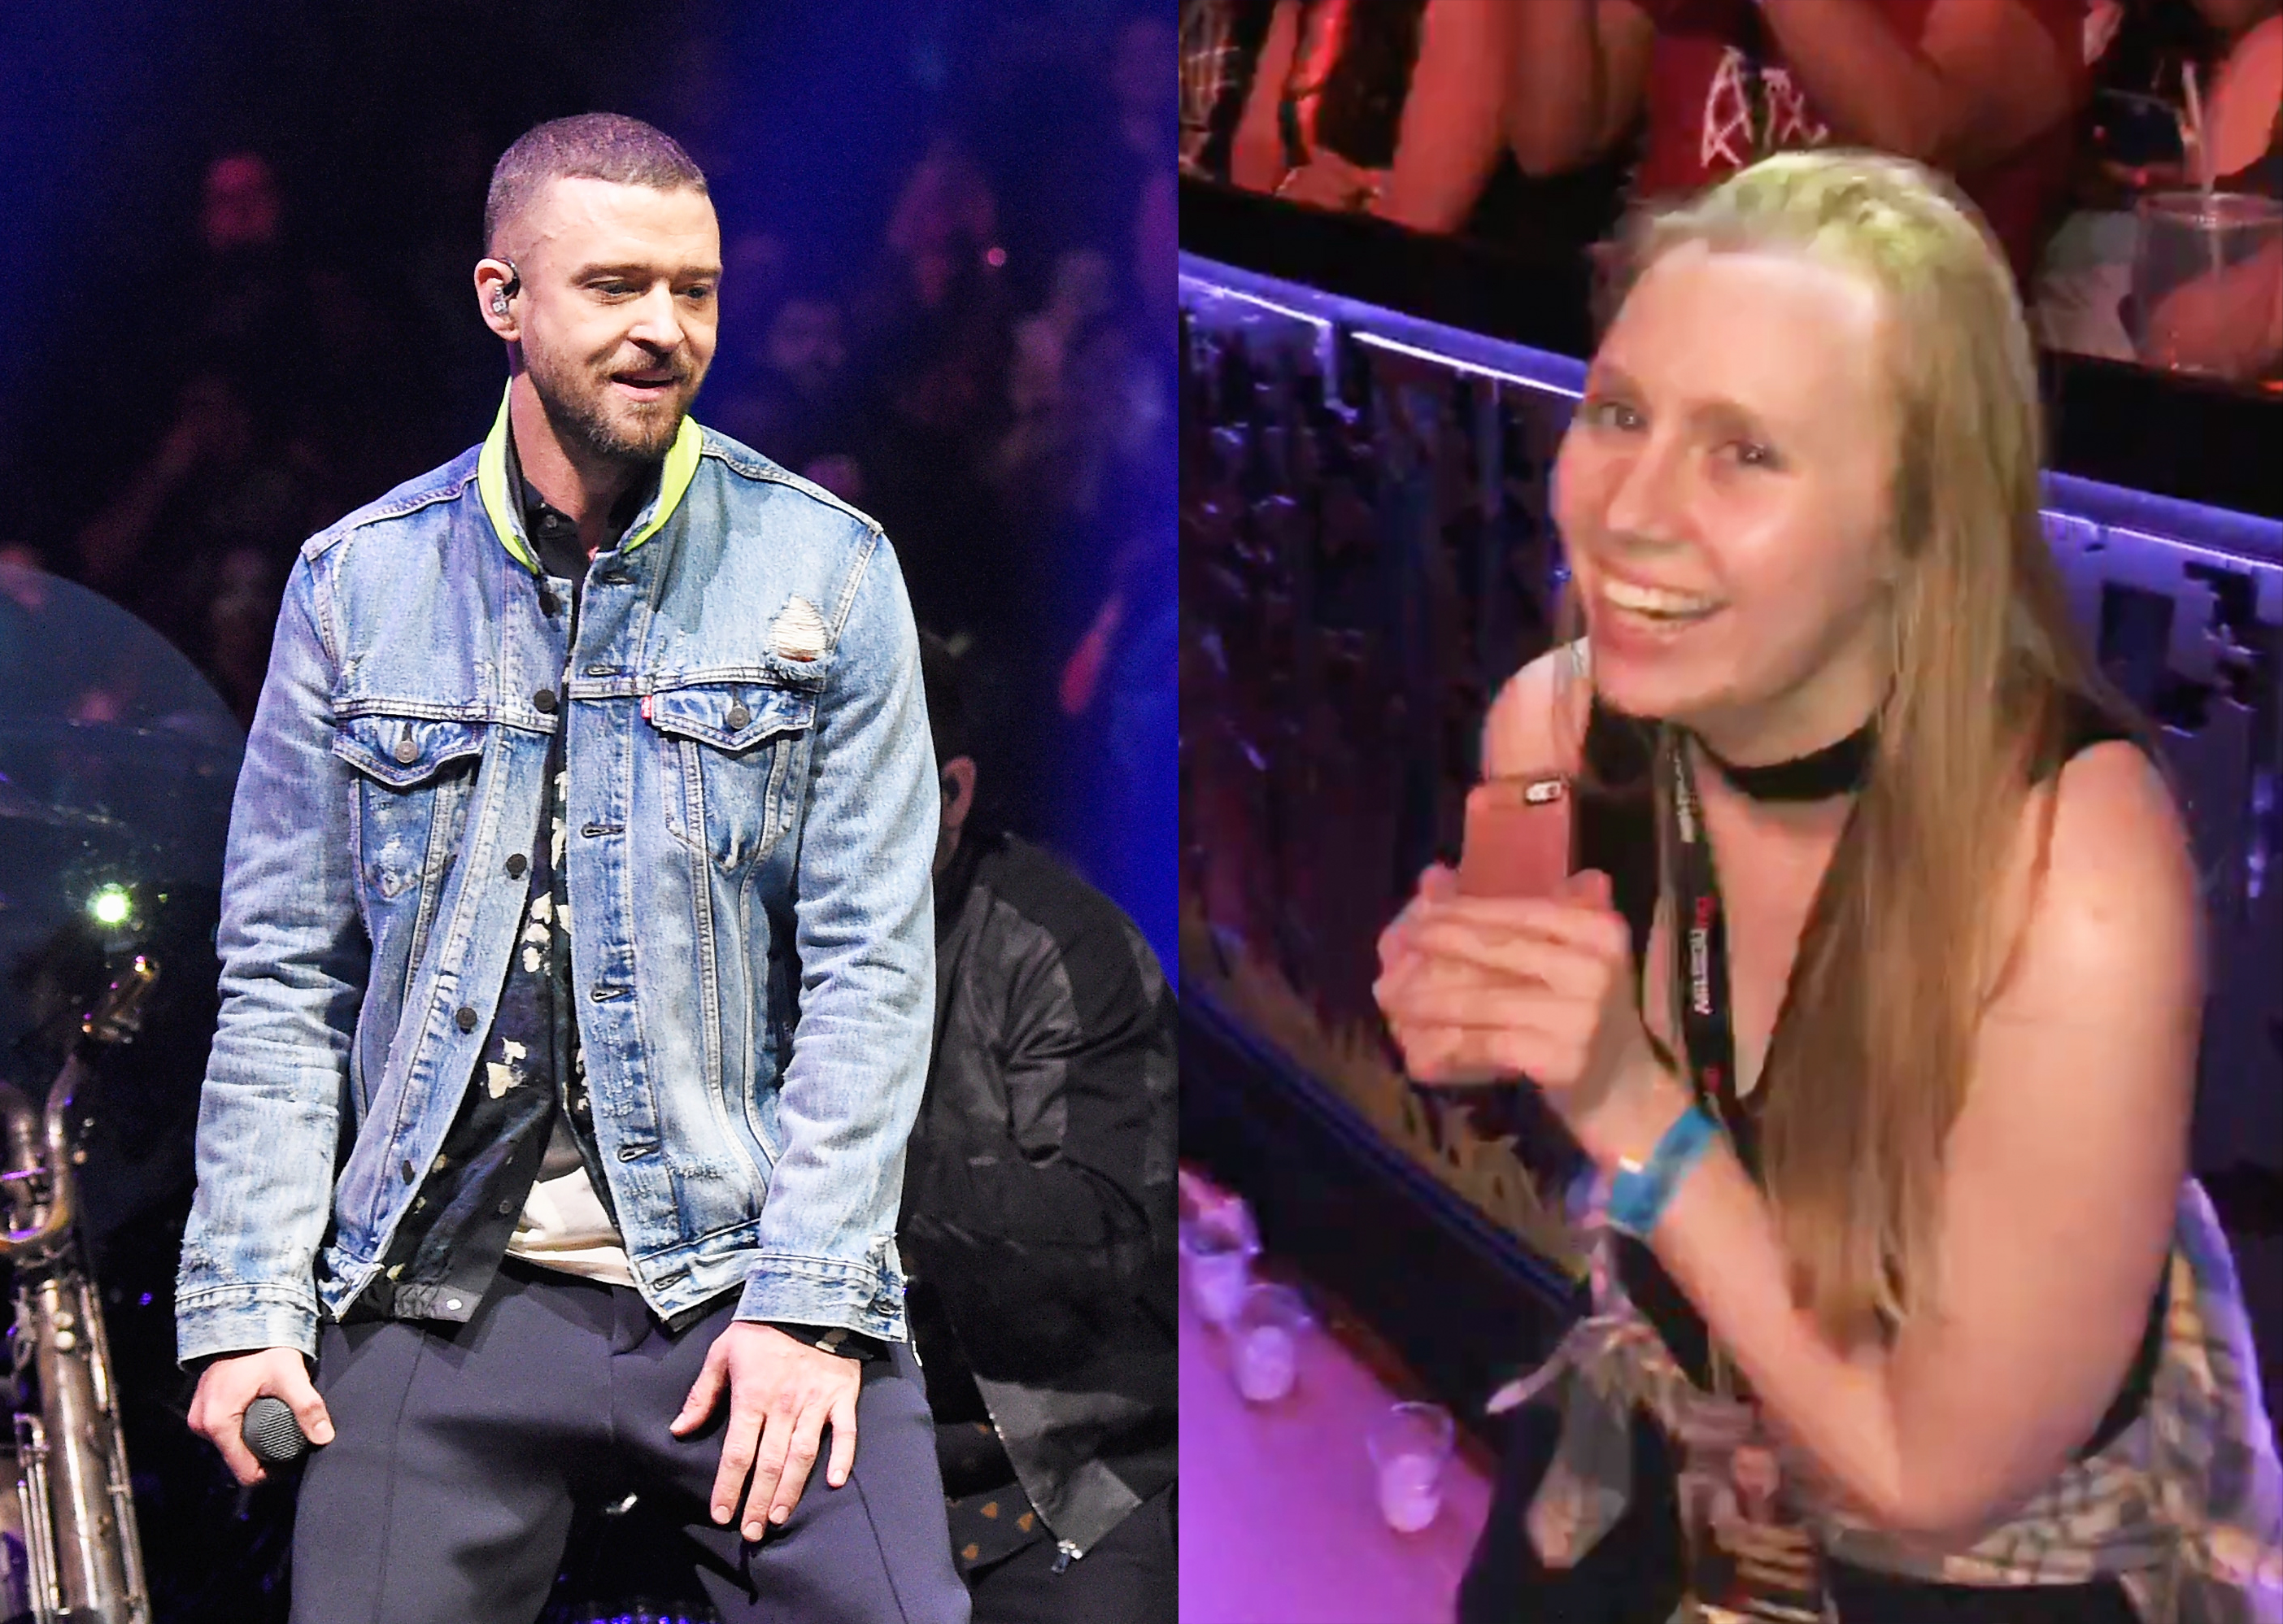 Justin Timberlake came for my BSB-loving heart and I'm not mad at it